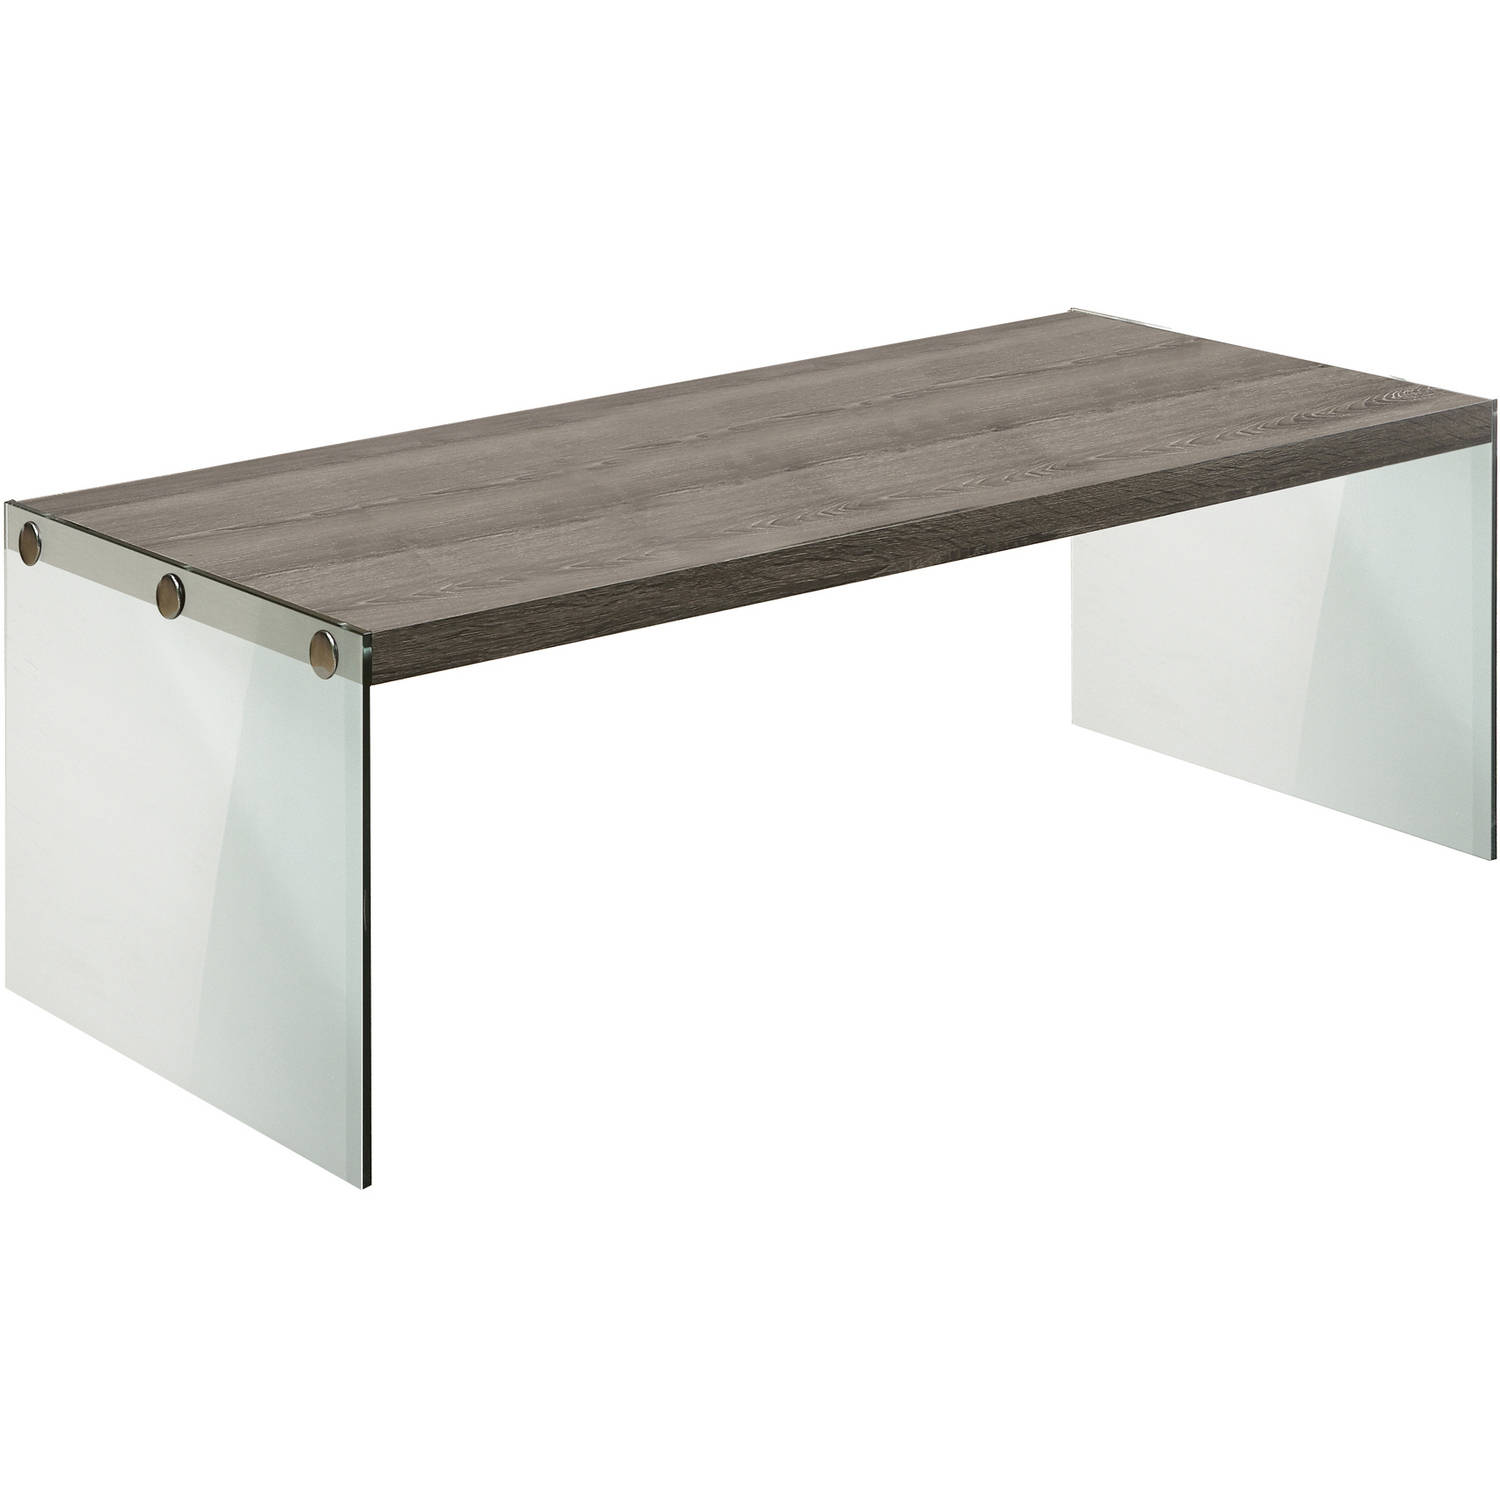 monarch coffee table dark taupe with tempered glass - walmart